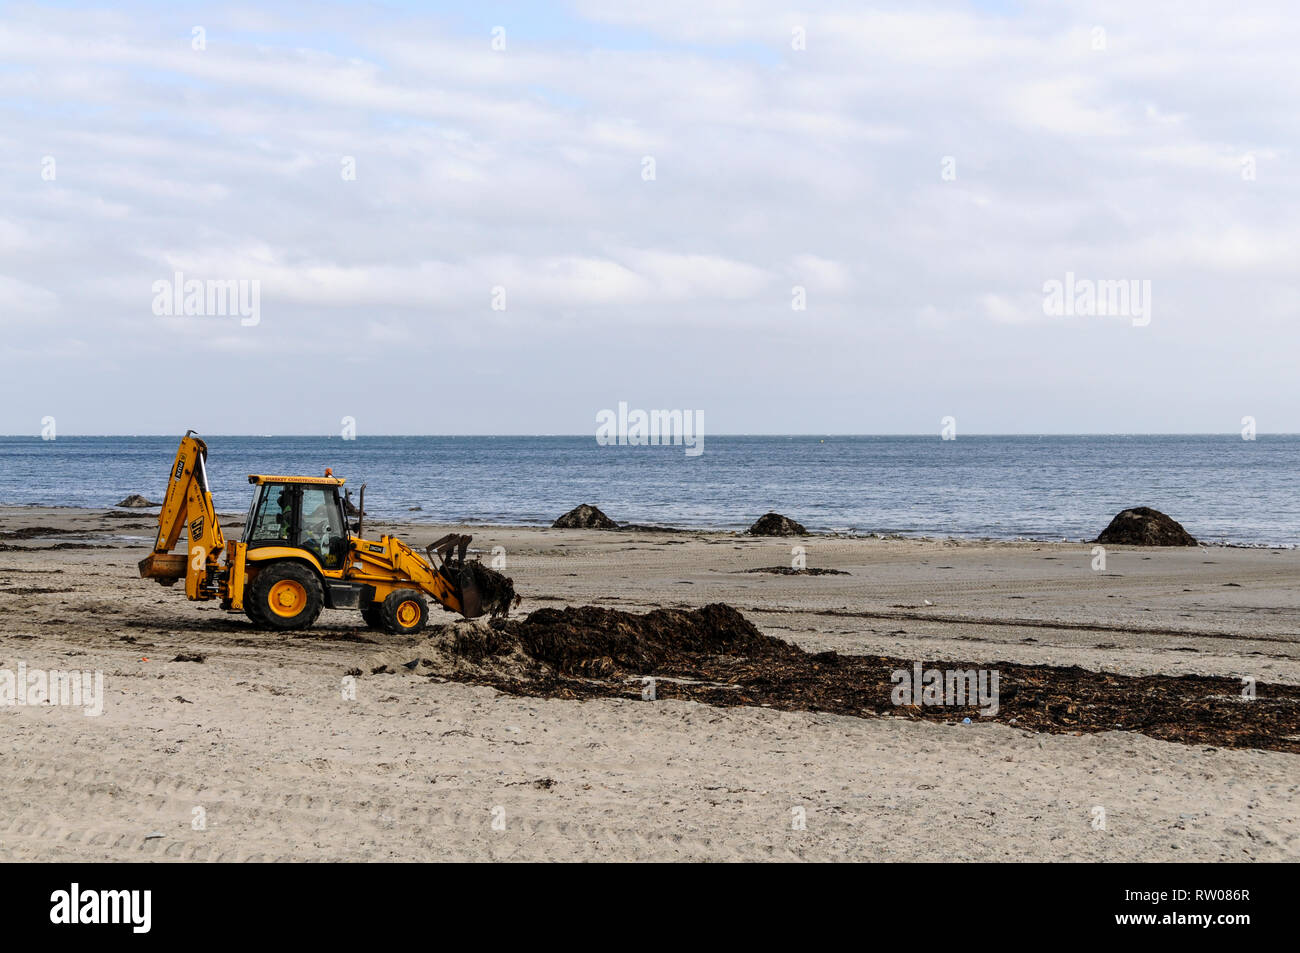 A tractor shoring up seaweed is taken to the sea shore on the  beach in Douglas, the island's capital on the Isle of Man, Britain. The seaweed is then - Stock Image